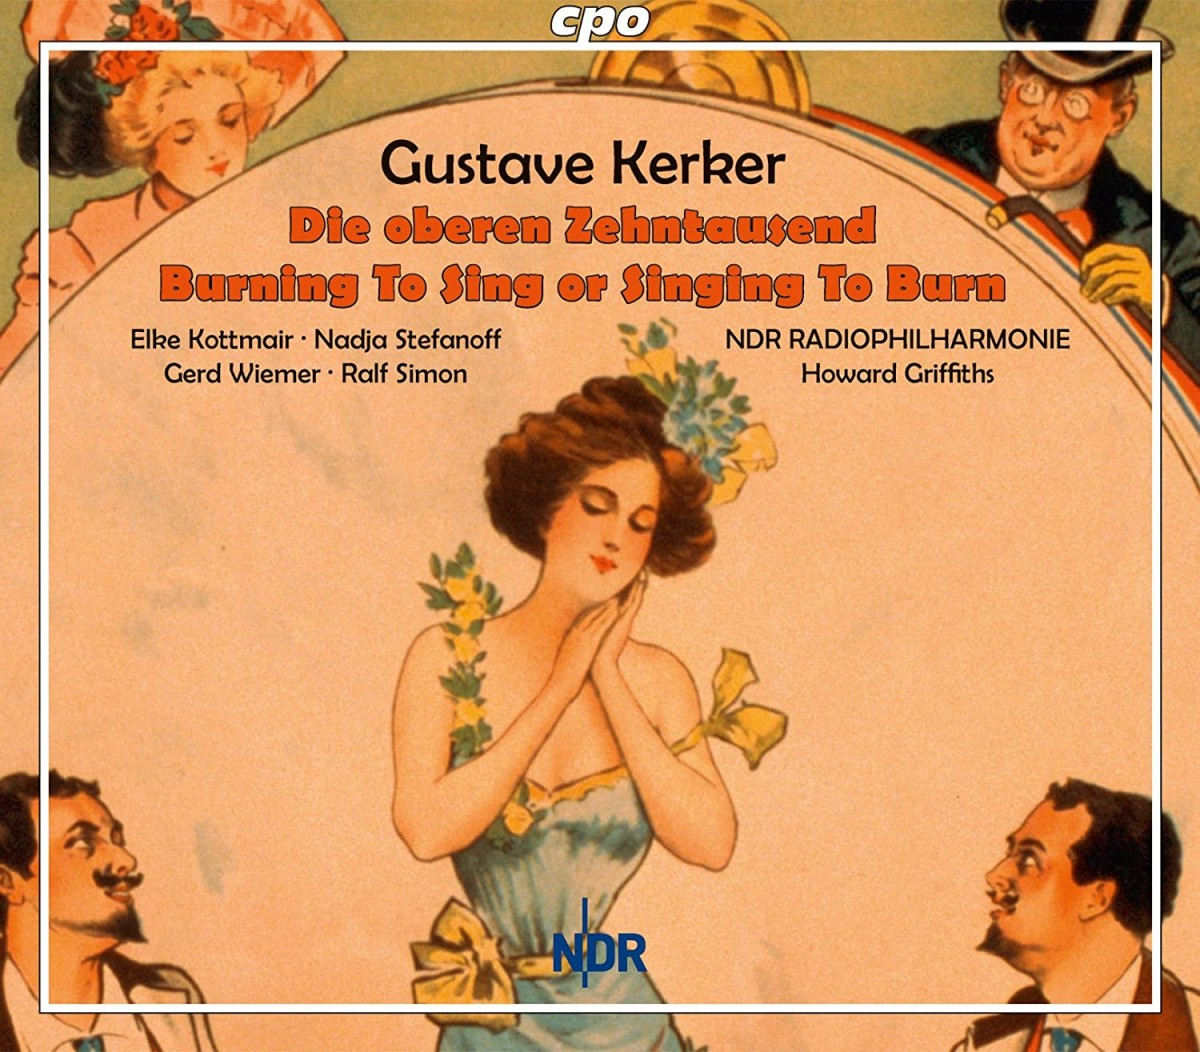 """Kerker's """"Die oberen Zehntausend"""" combined with """"Burning to Sing"""" on a double disc album. (Photo: cpo)"""